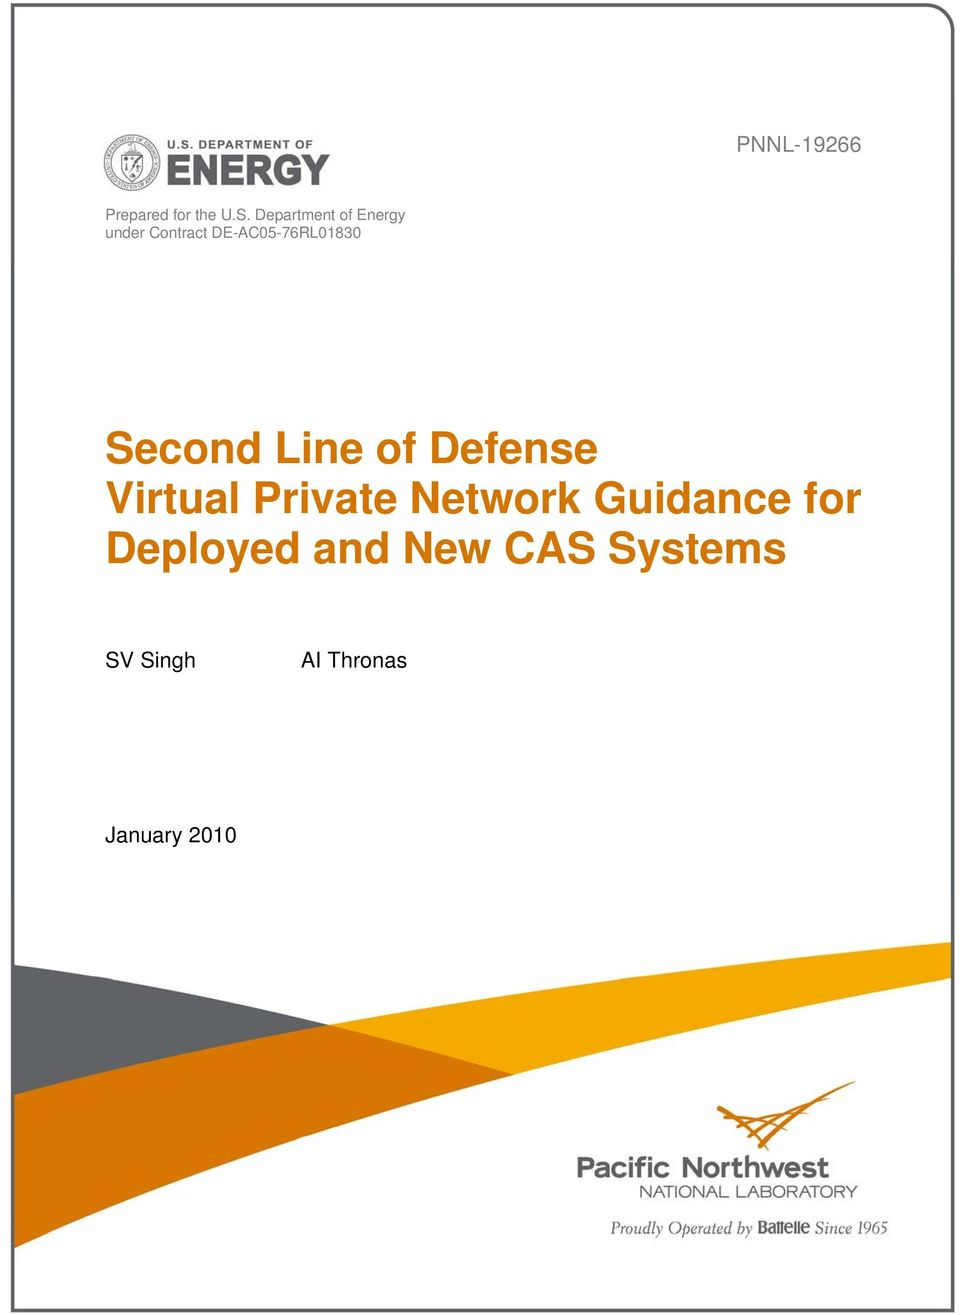 DE-AC05-76RL01830 Second Line of Defense Virtual